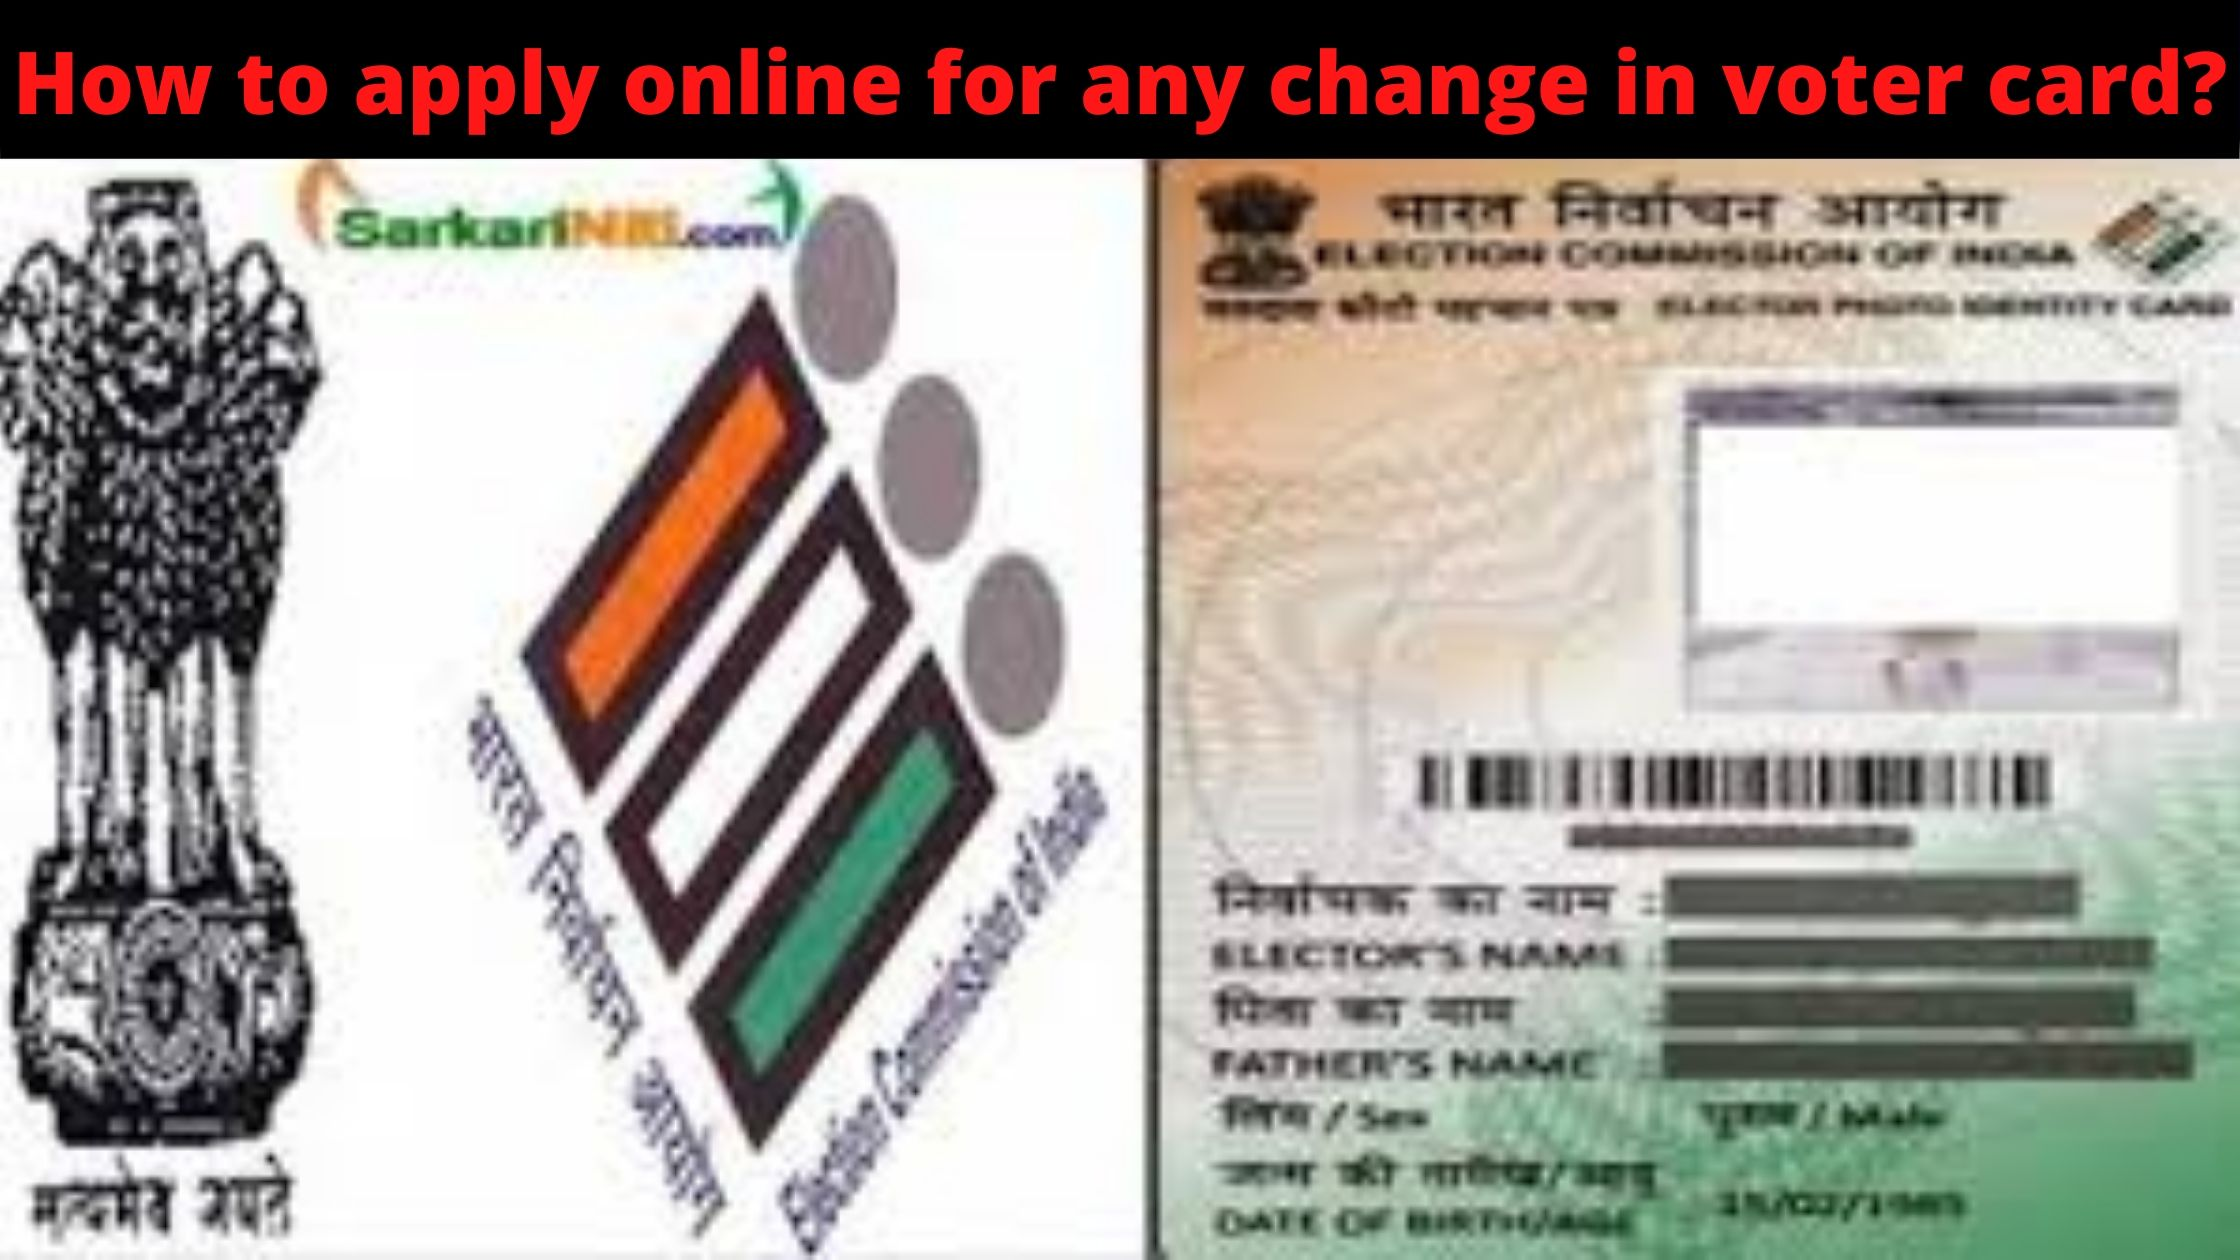 how-to-apply-online-for-any-change-in-voter-card-http://masterjitips.com/